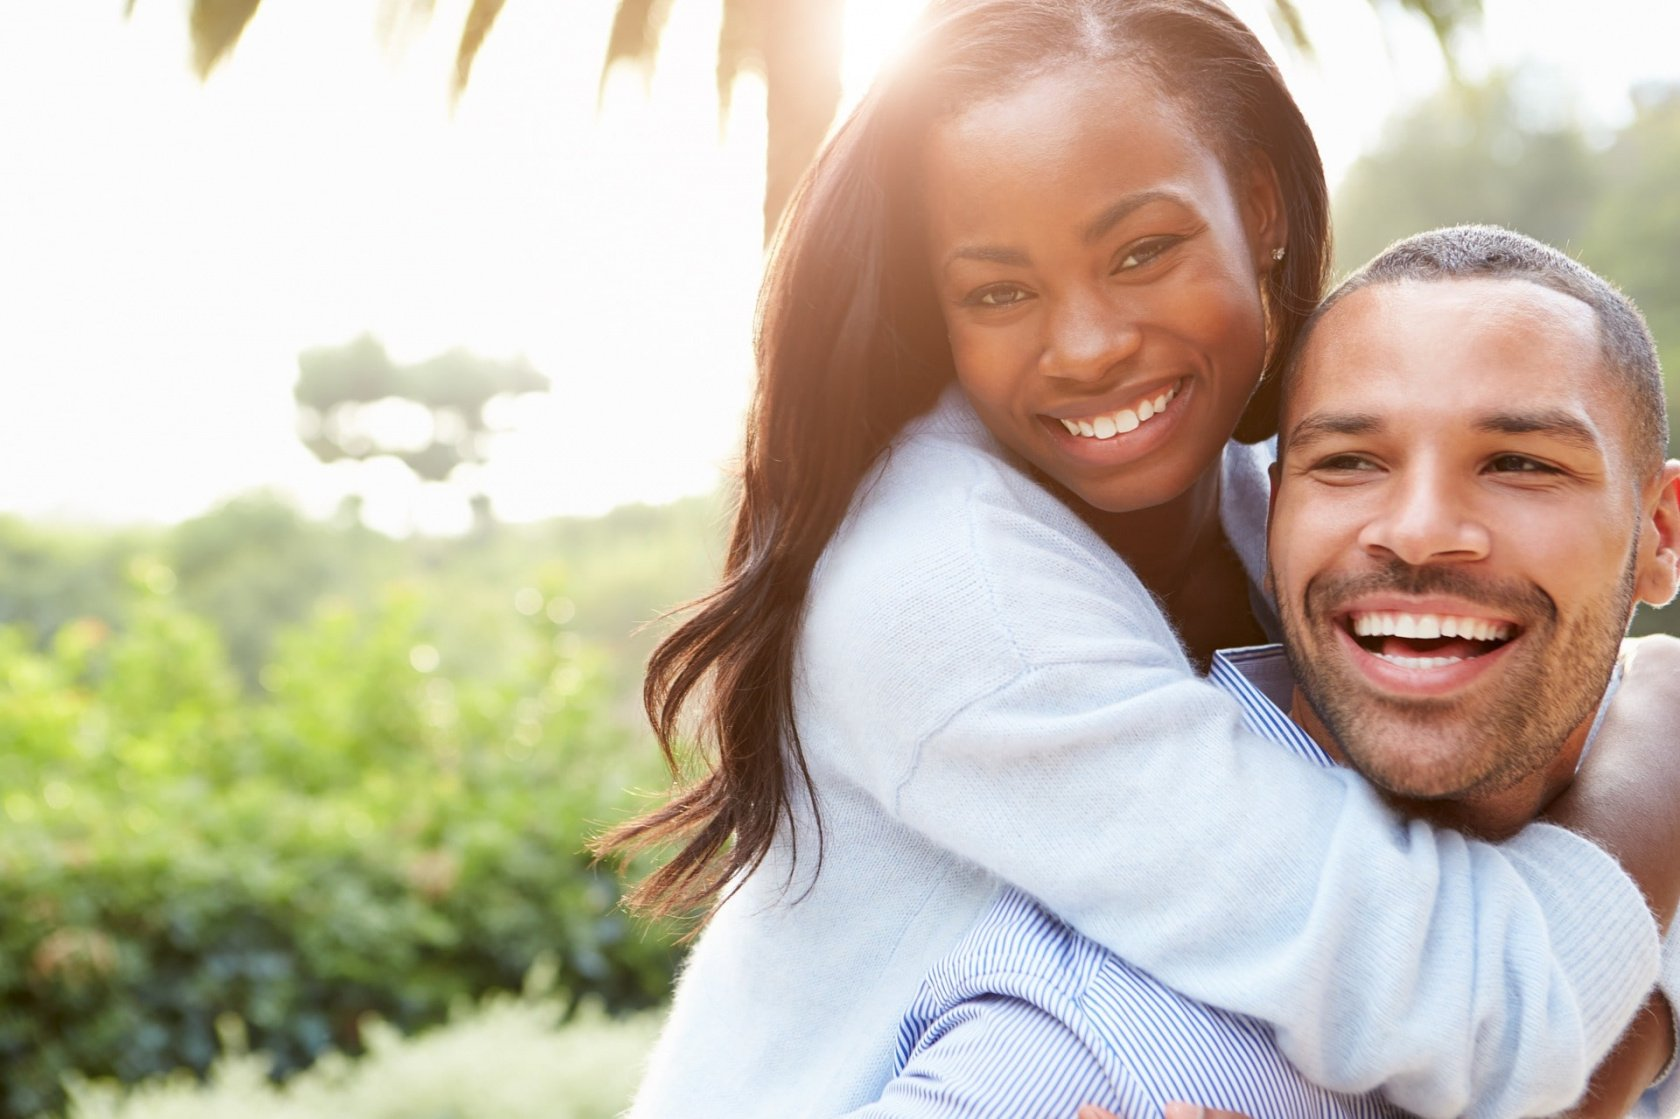 Authentic Couple Poses and Best Couples Photoshoot Ideas | Skylum Blog